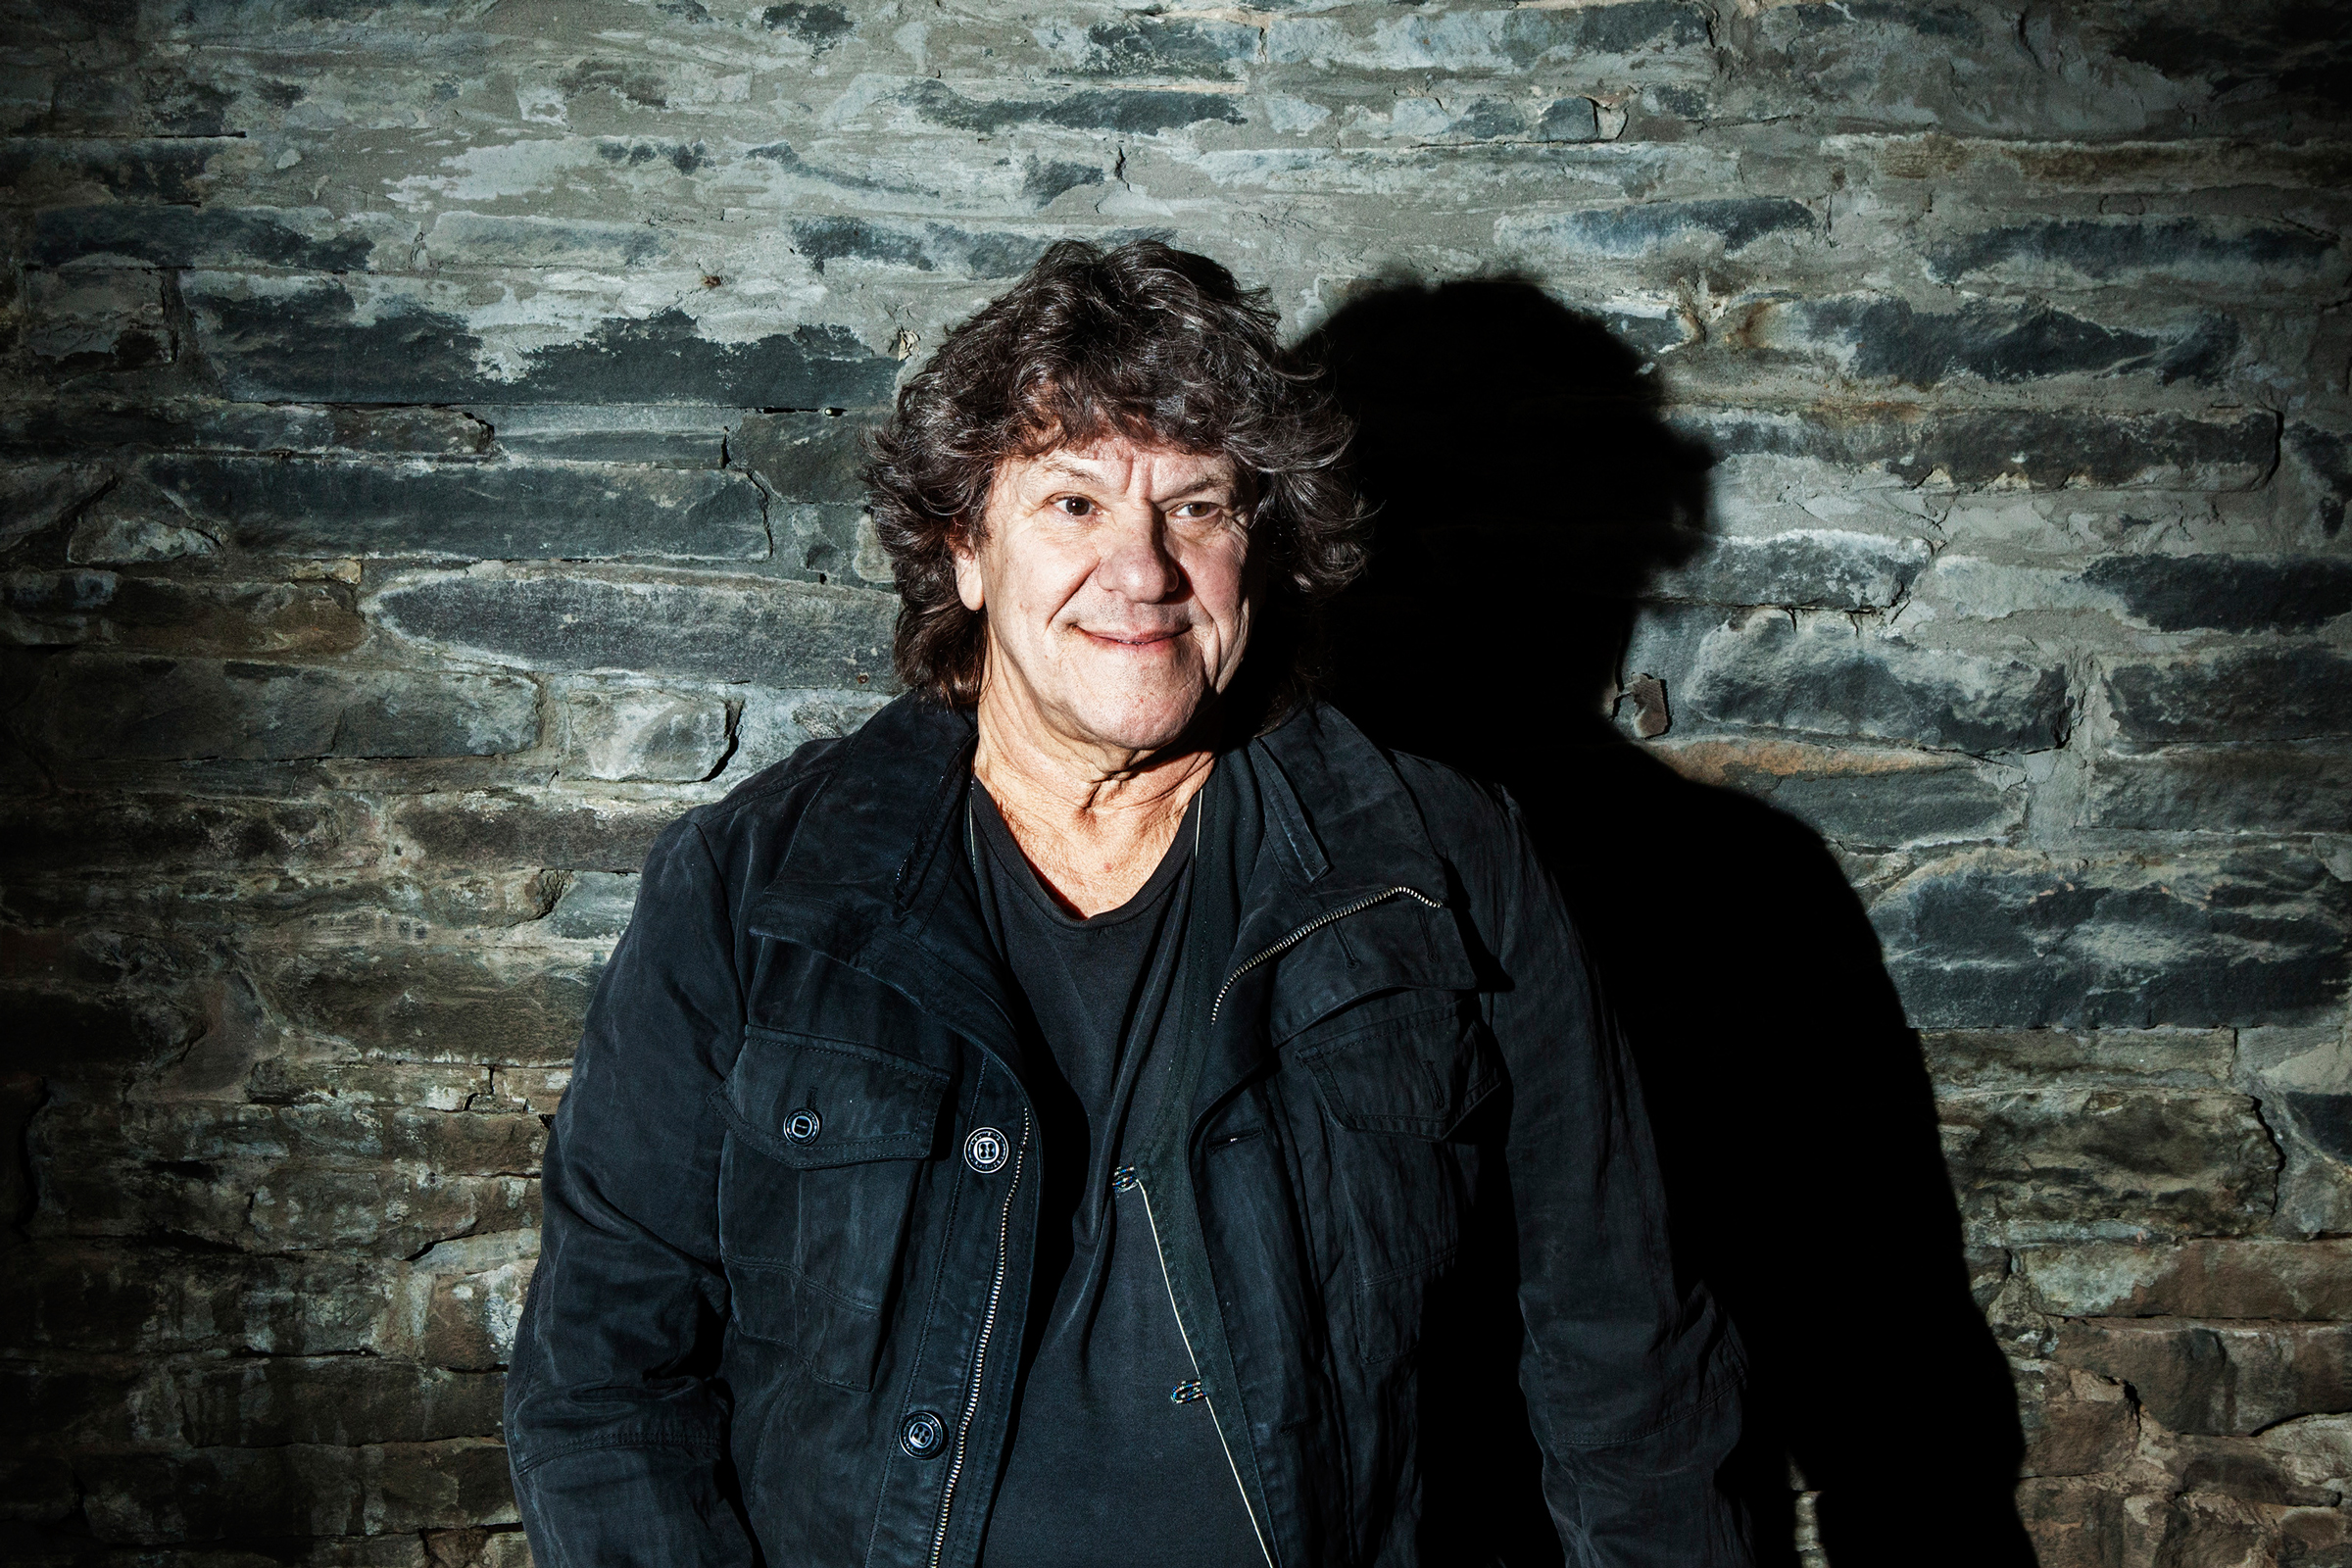 Michael Lang: Woodstock 50's Permit Rules 'Drawn Up by People Who Didn't Know Anything About This Business'